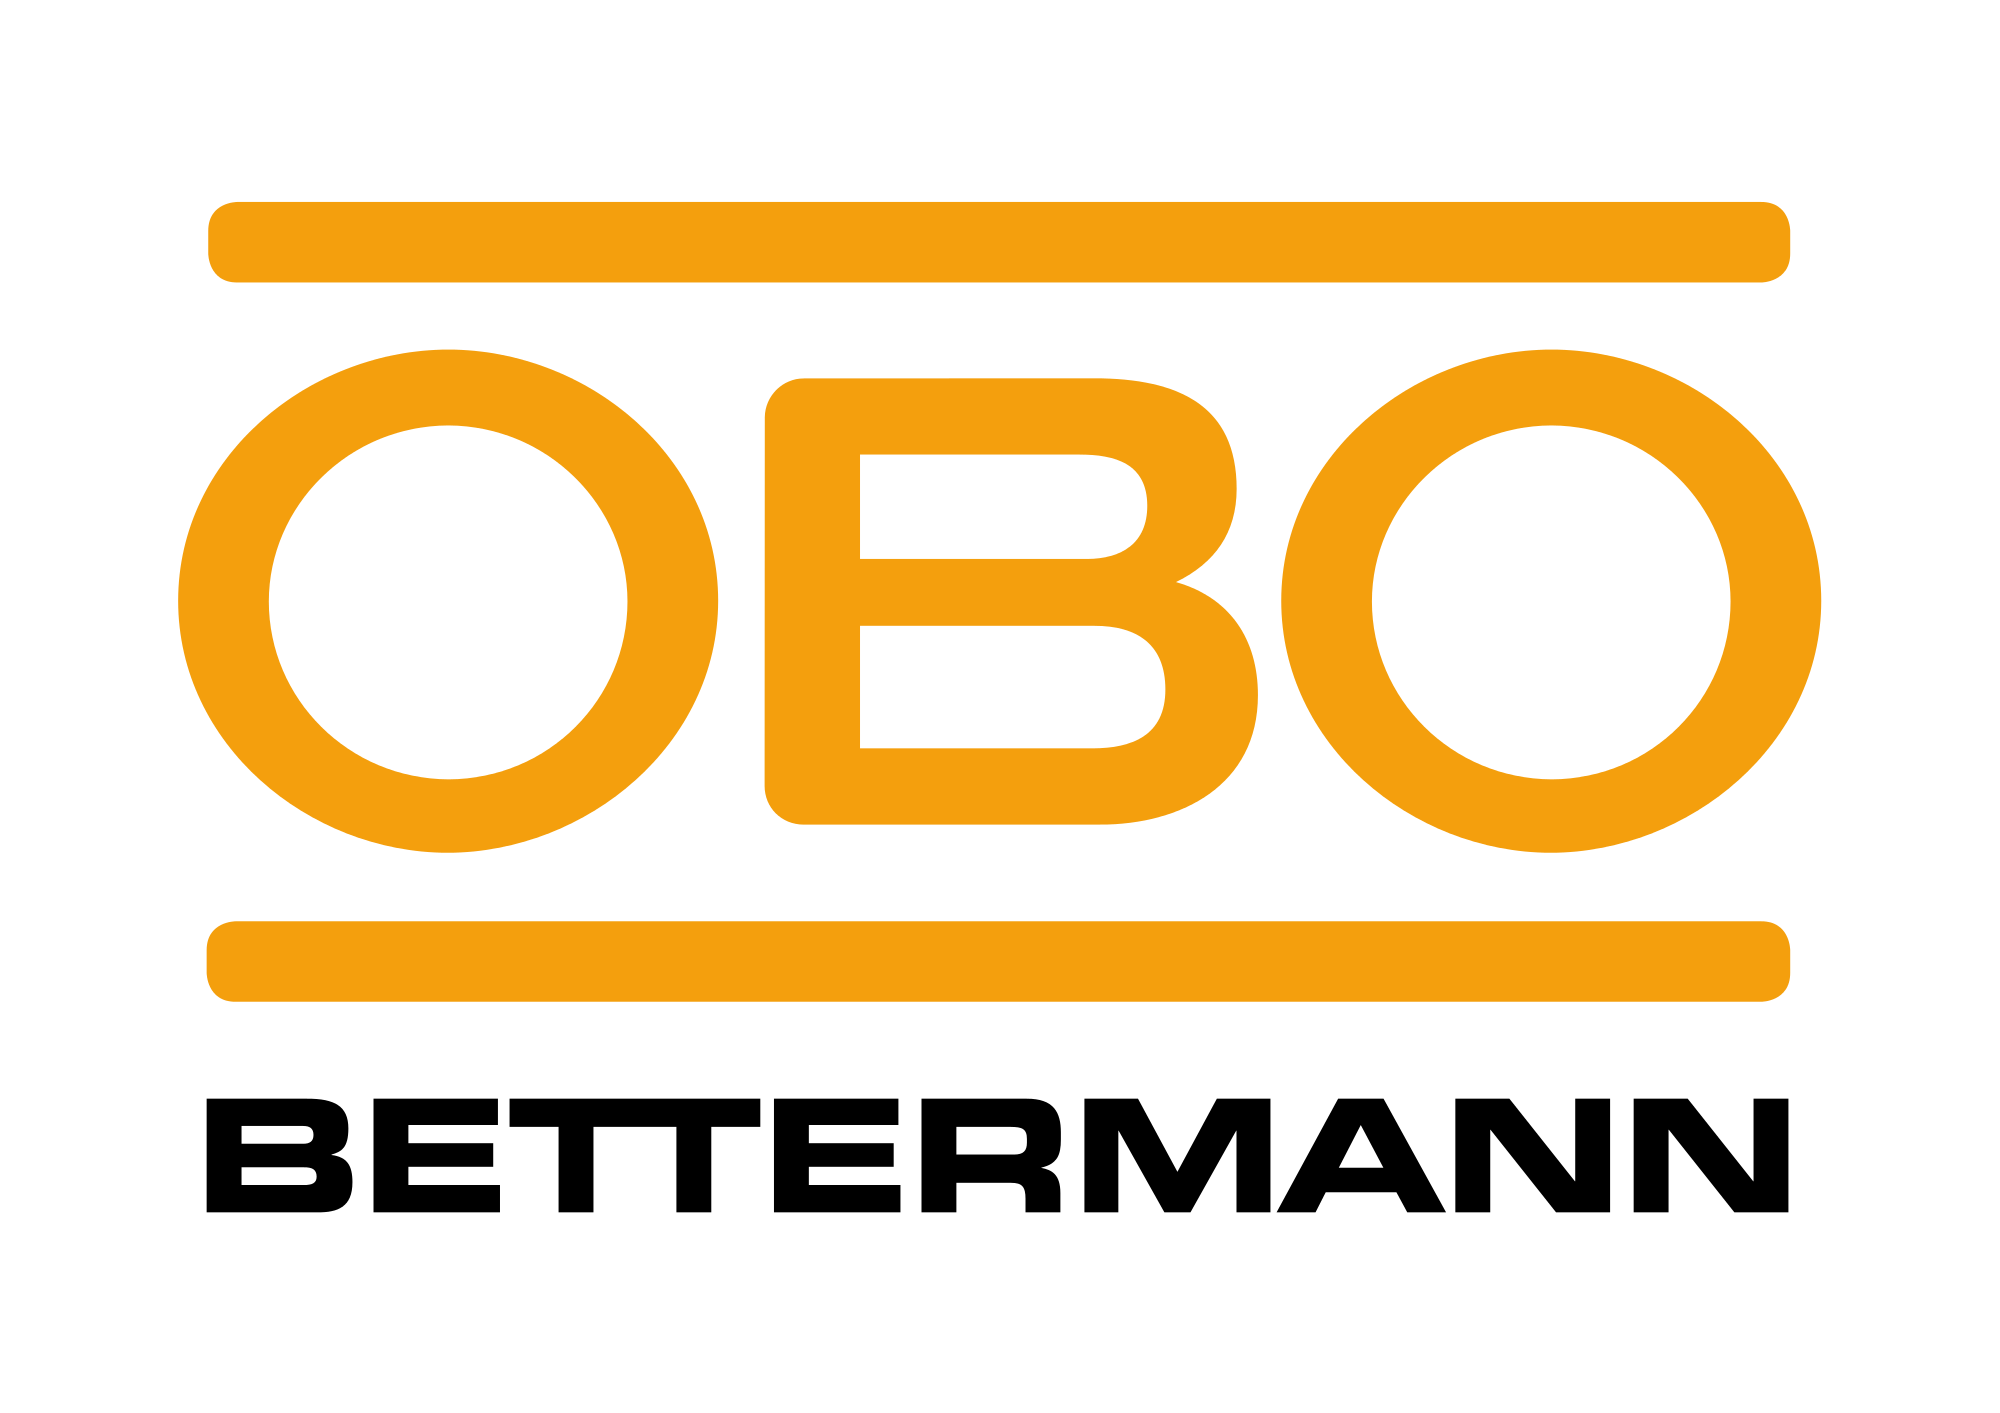 OBO BETTERMANN GmbH & Co. KG